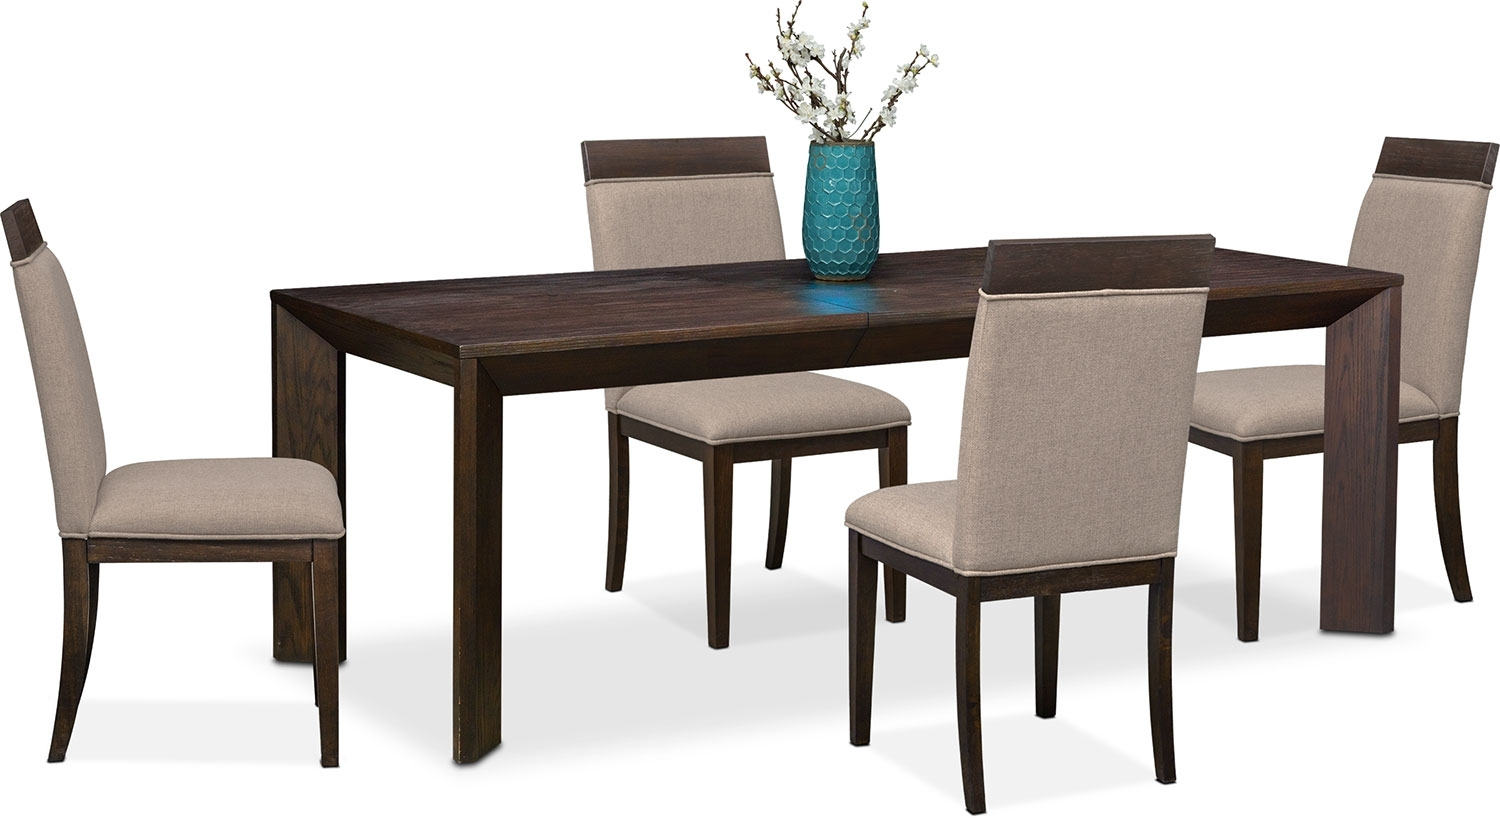 Gavin Table And 4 Side Chairs – Brownstone | Value City Furniture Throughout Newest Gavin Dining Tables (Photo 7 of 20)